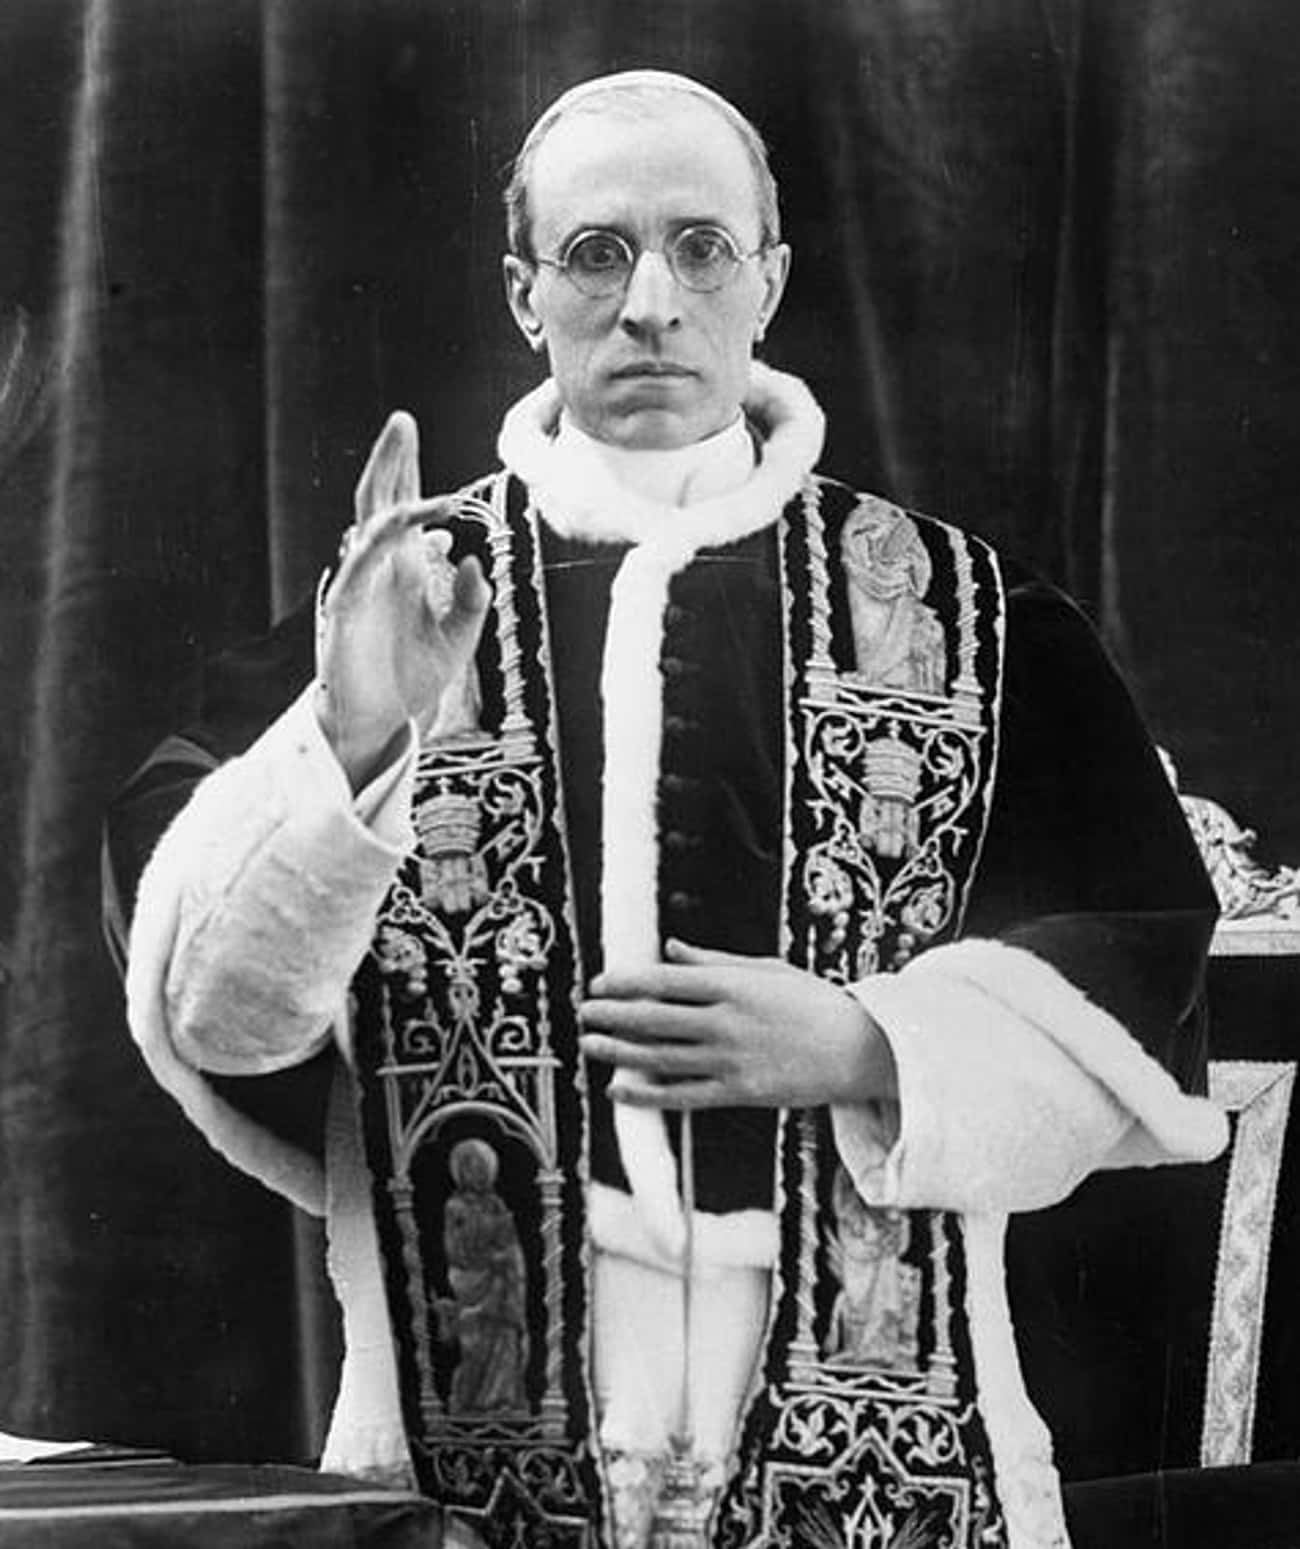 Pope Pius XII Denying Eyewitness Reports Of Mass Execution During The Holocaust